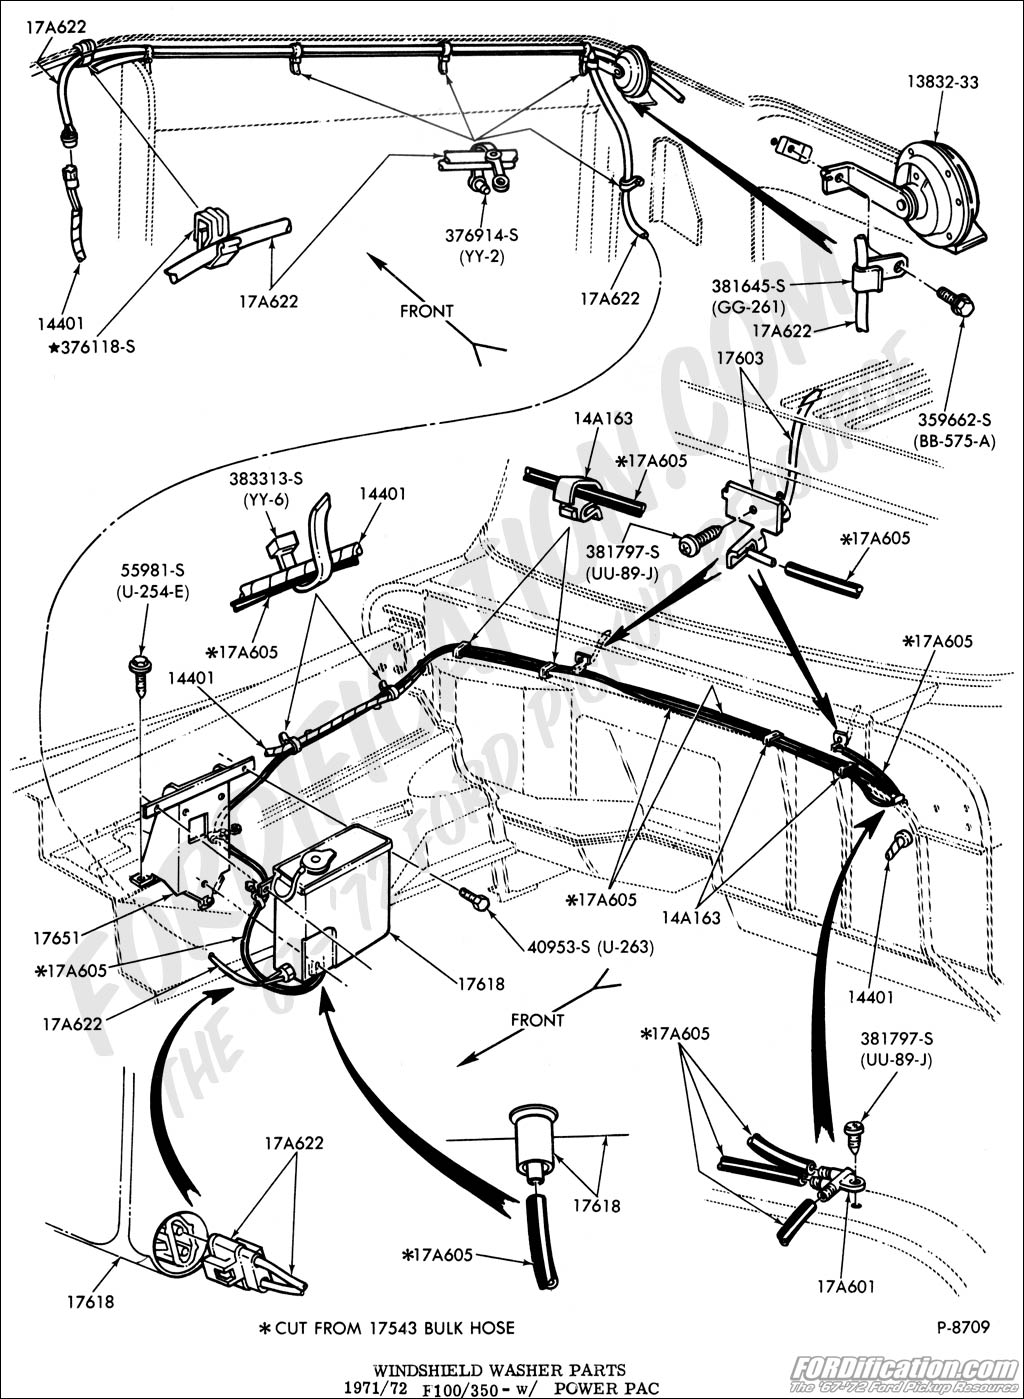 1972 chevy truck wiper motor wiring diagram